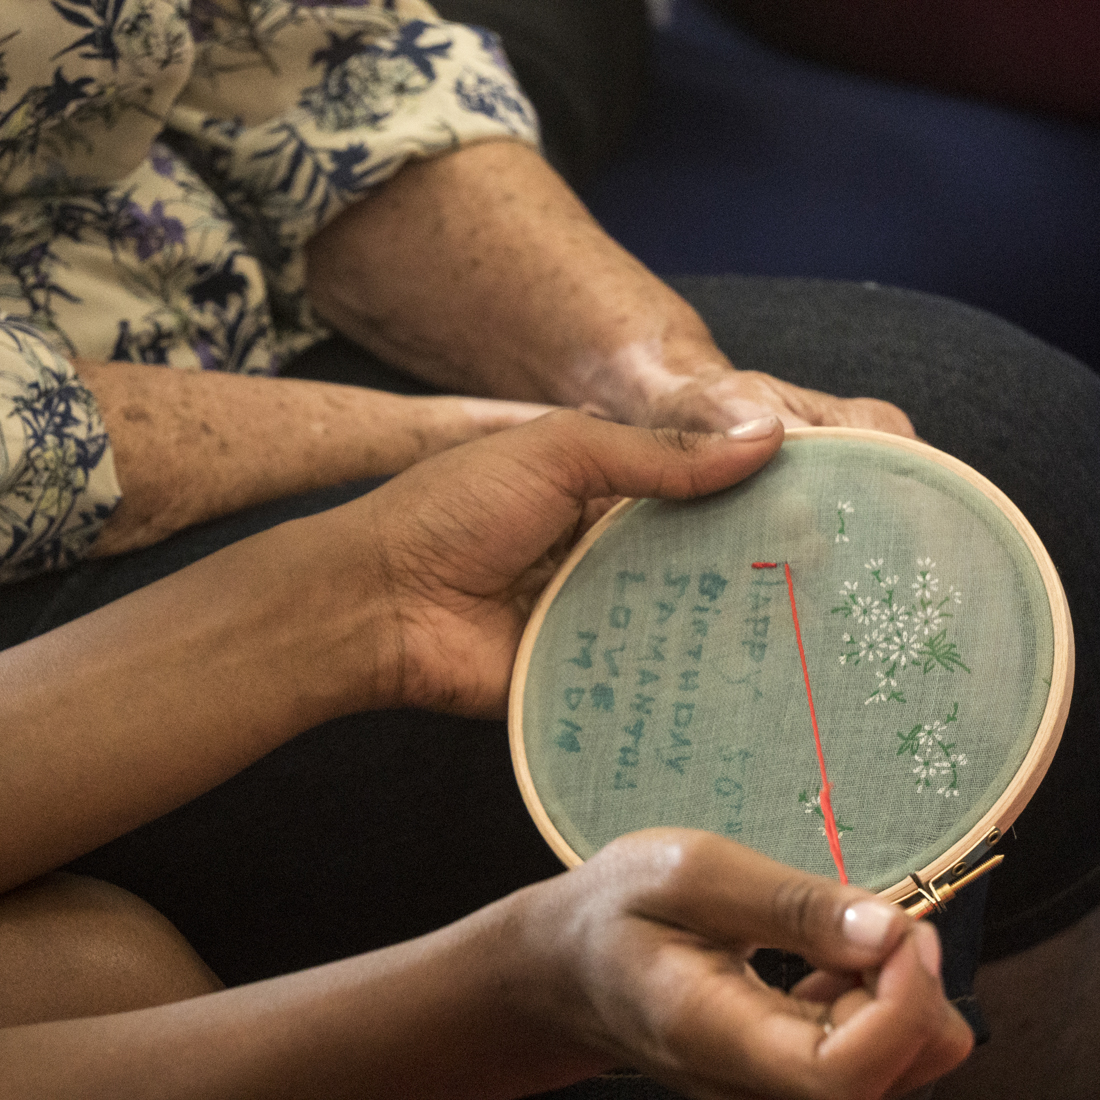 A close up of some hands embroidering simple text on material stretched over an embroidery hoop.